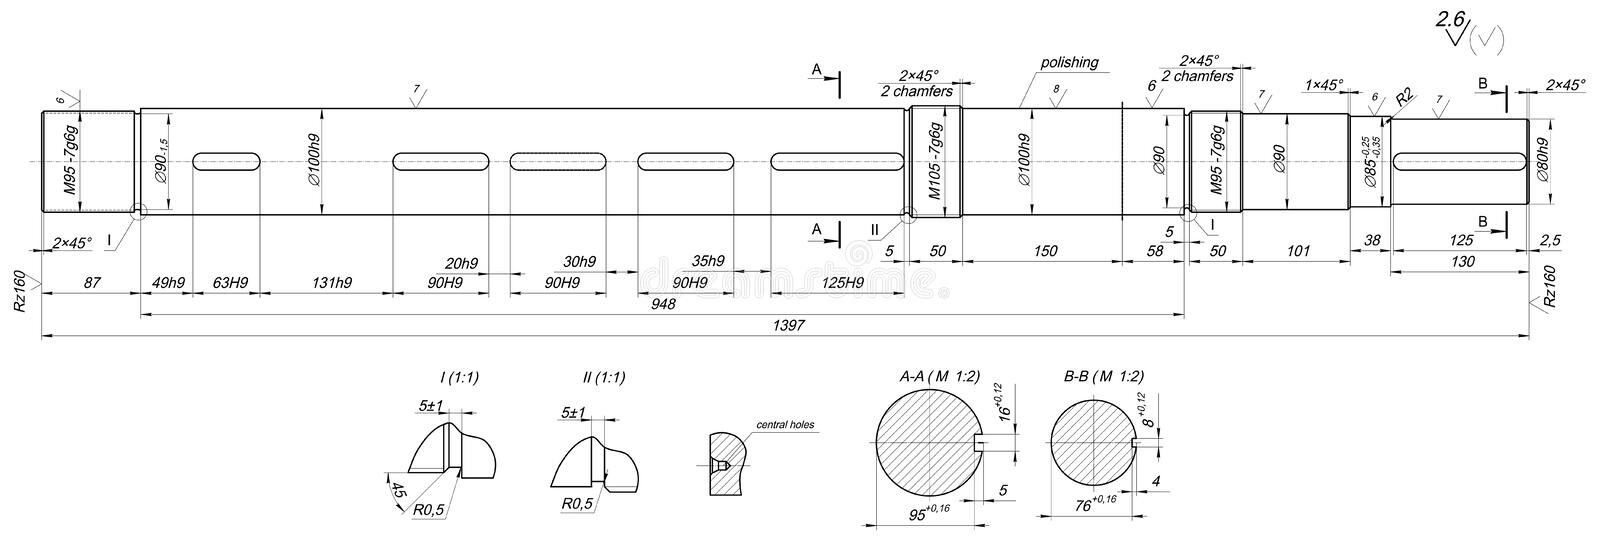 Line Drawing Numbers : Expanded shaft sketch with chamfers and radius stock